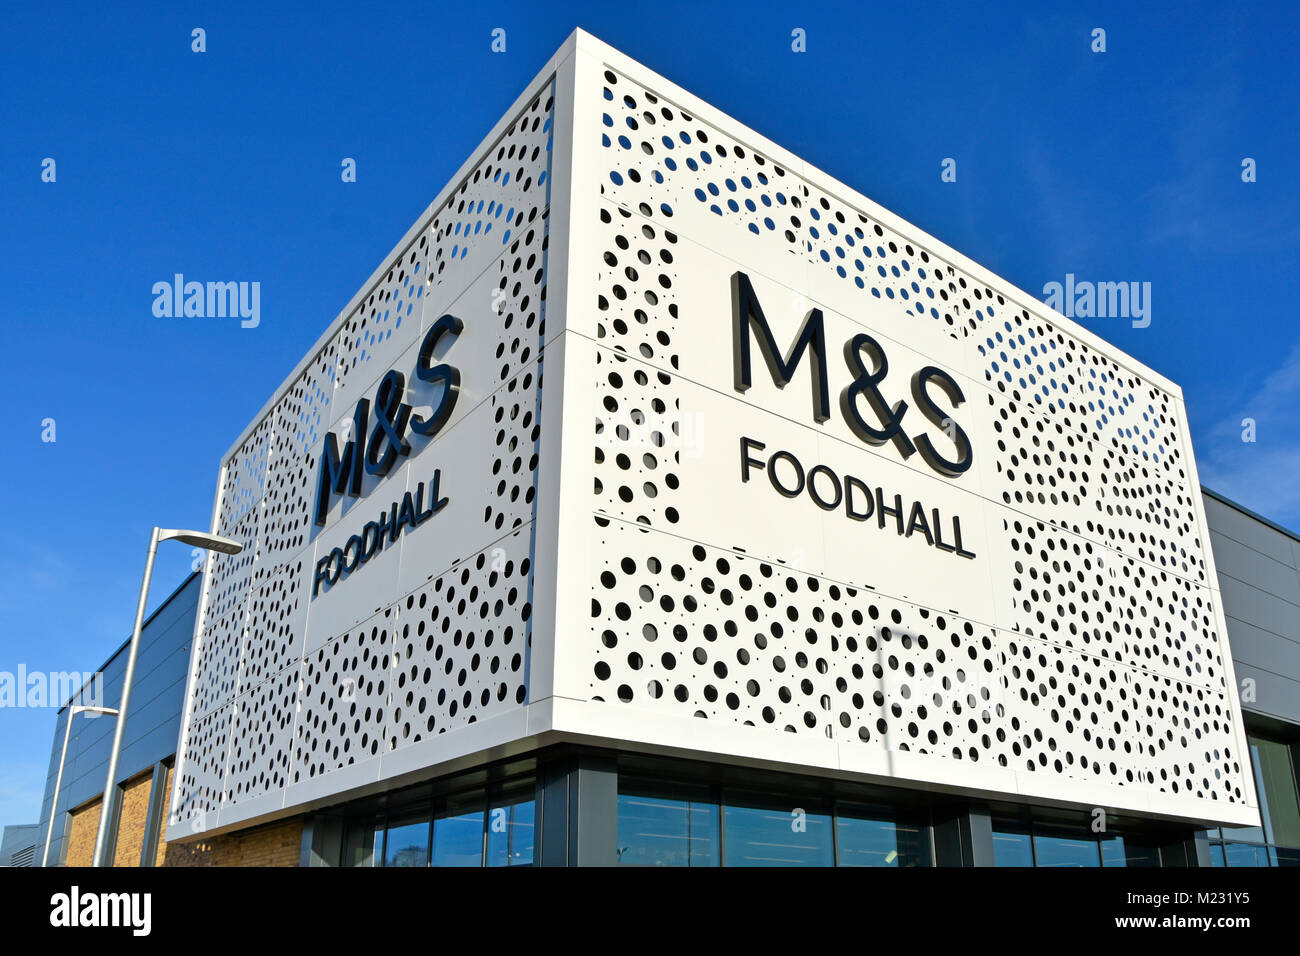 Modern dots design of front fascia & sign new M&S foodhall modern store building on corner site retail park - Stock Image